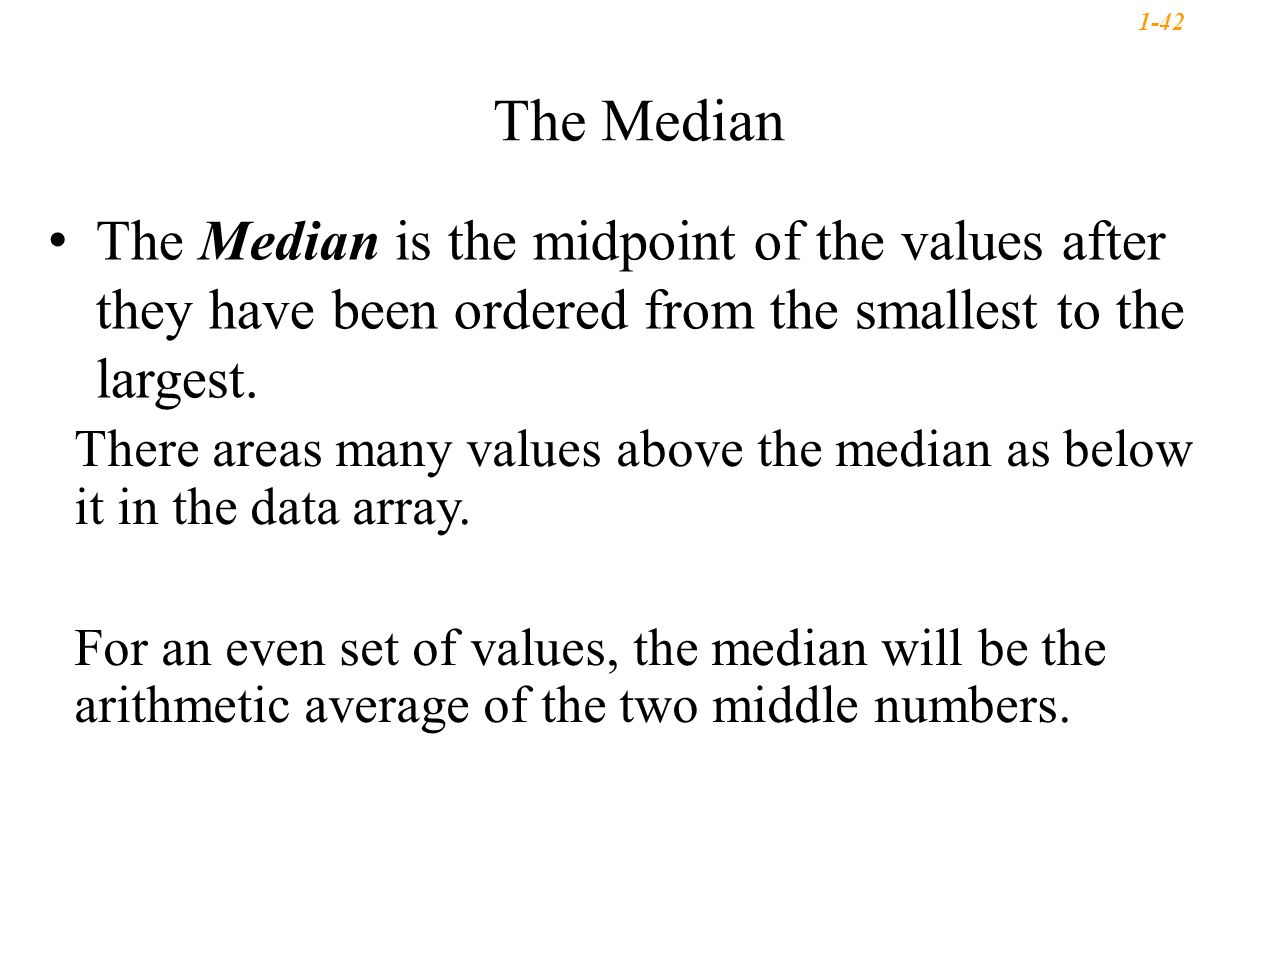 There Areas Many Values Above The Median As Below It In The Data Array For  An